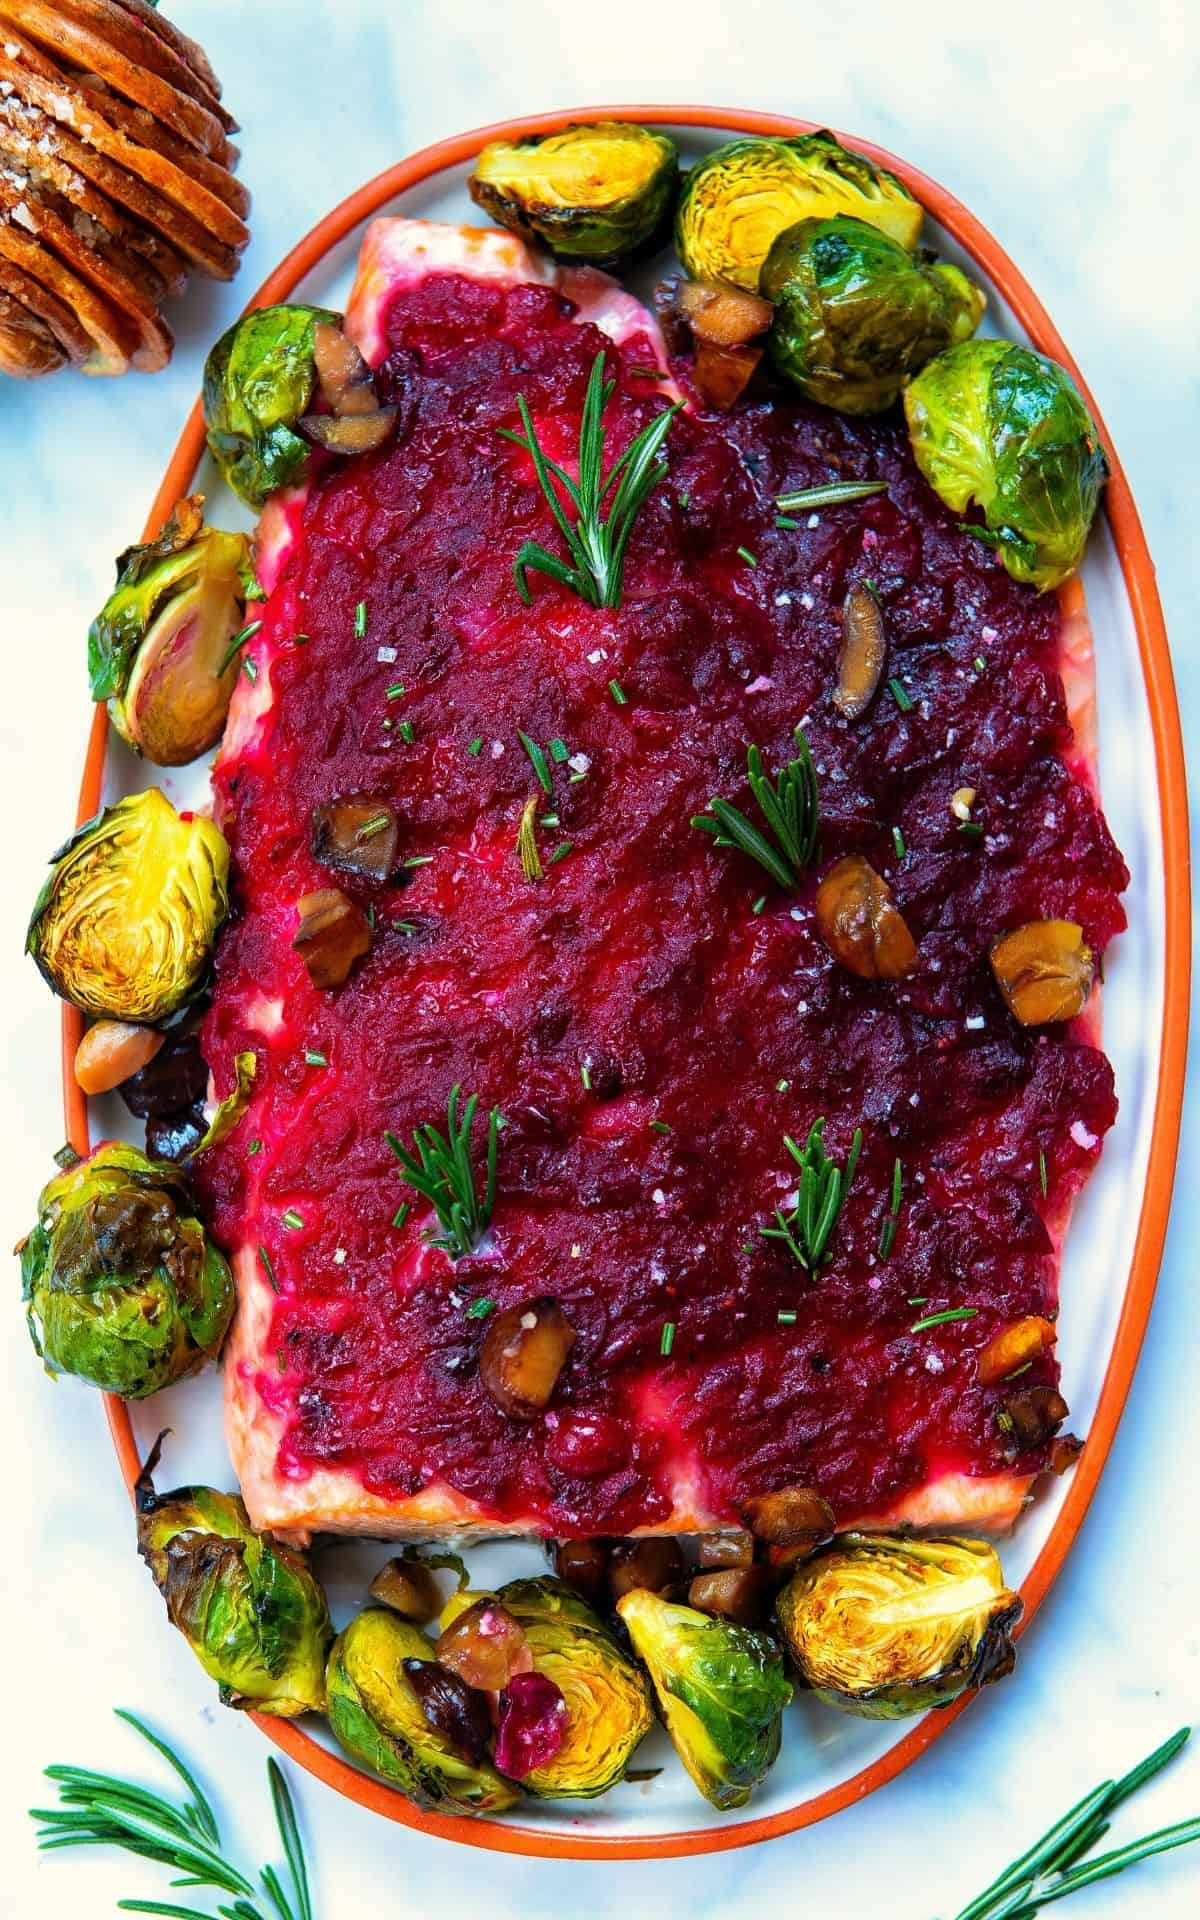 Platter with a large fillet of salmon with baked with cranberry sauce on top and with brussels sprouts around it.